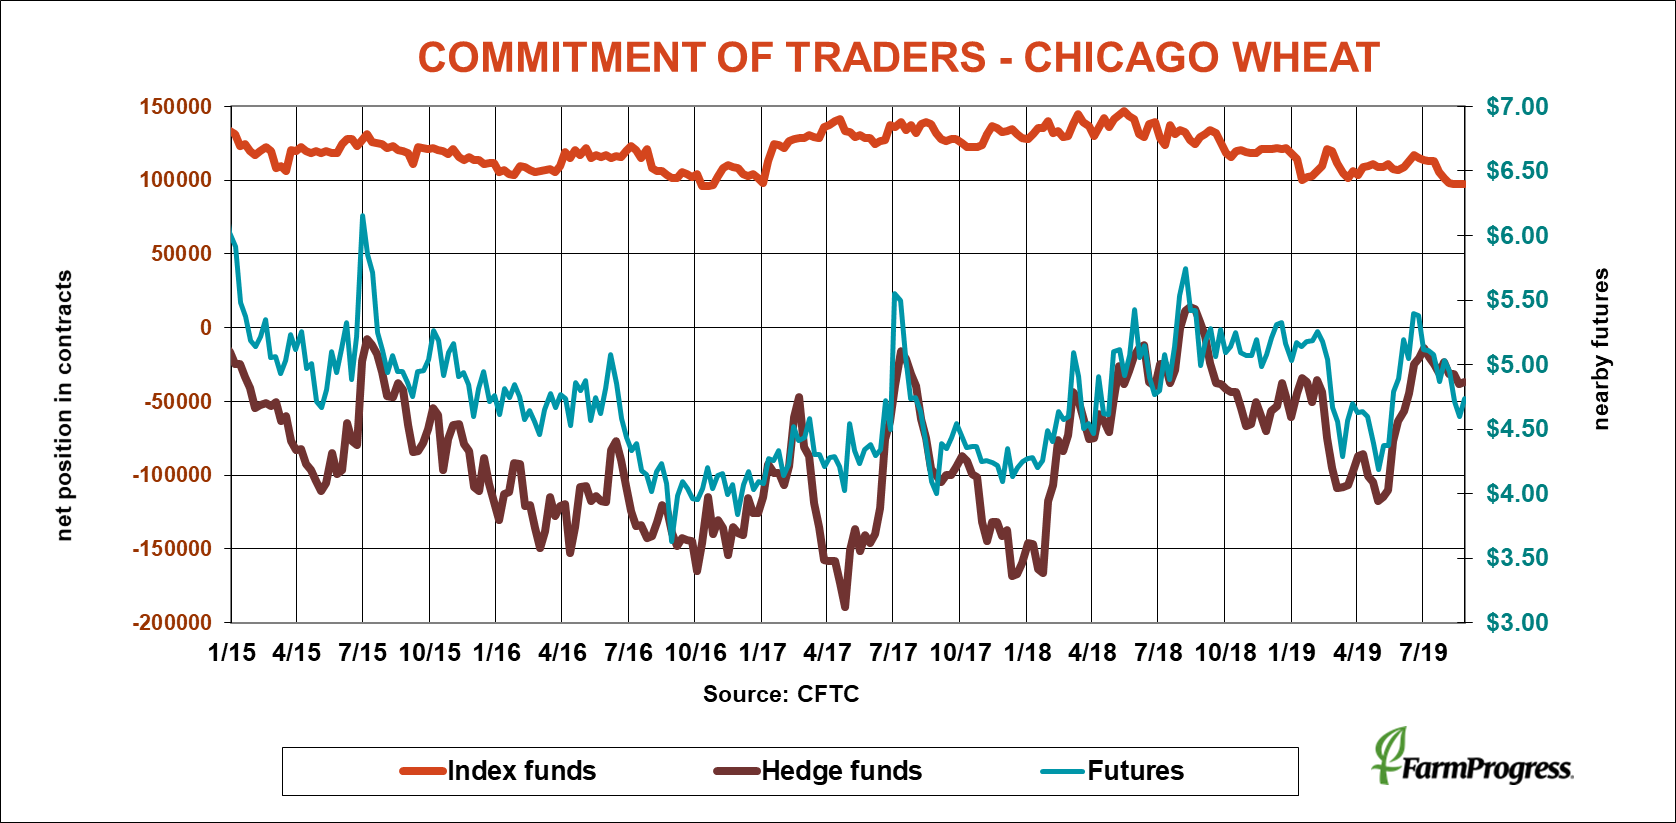 commitment-traders-chicago-wheat-083019.png